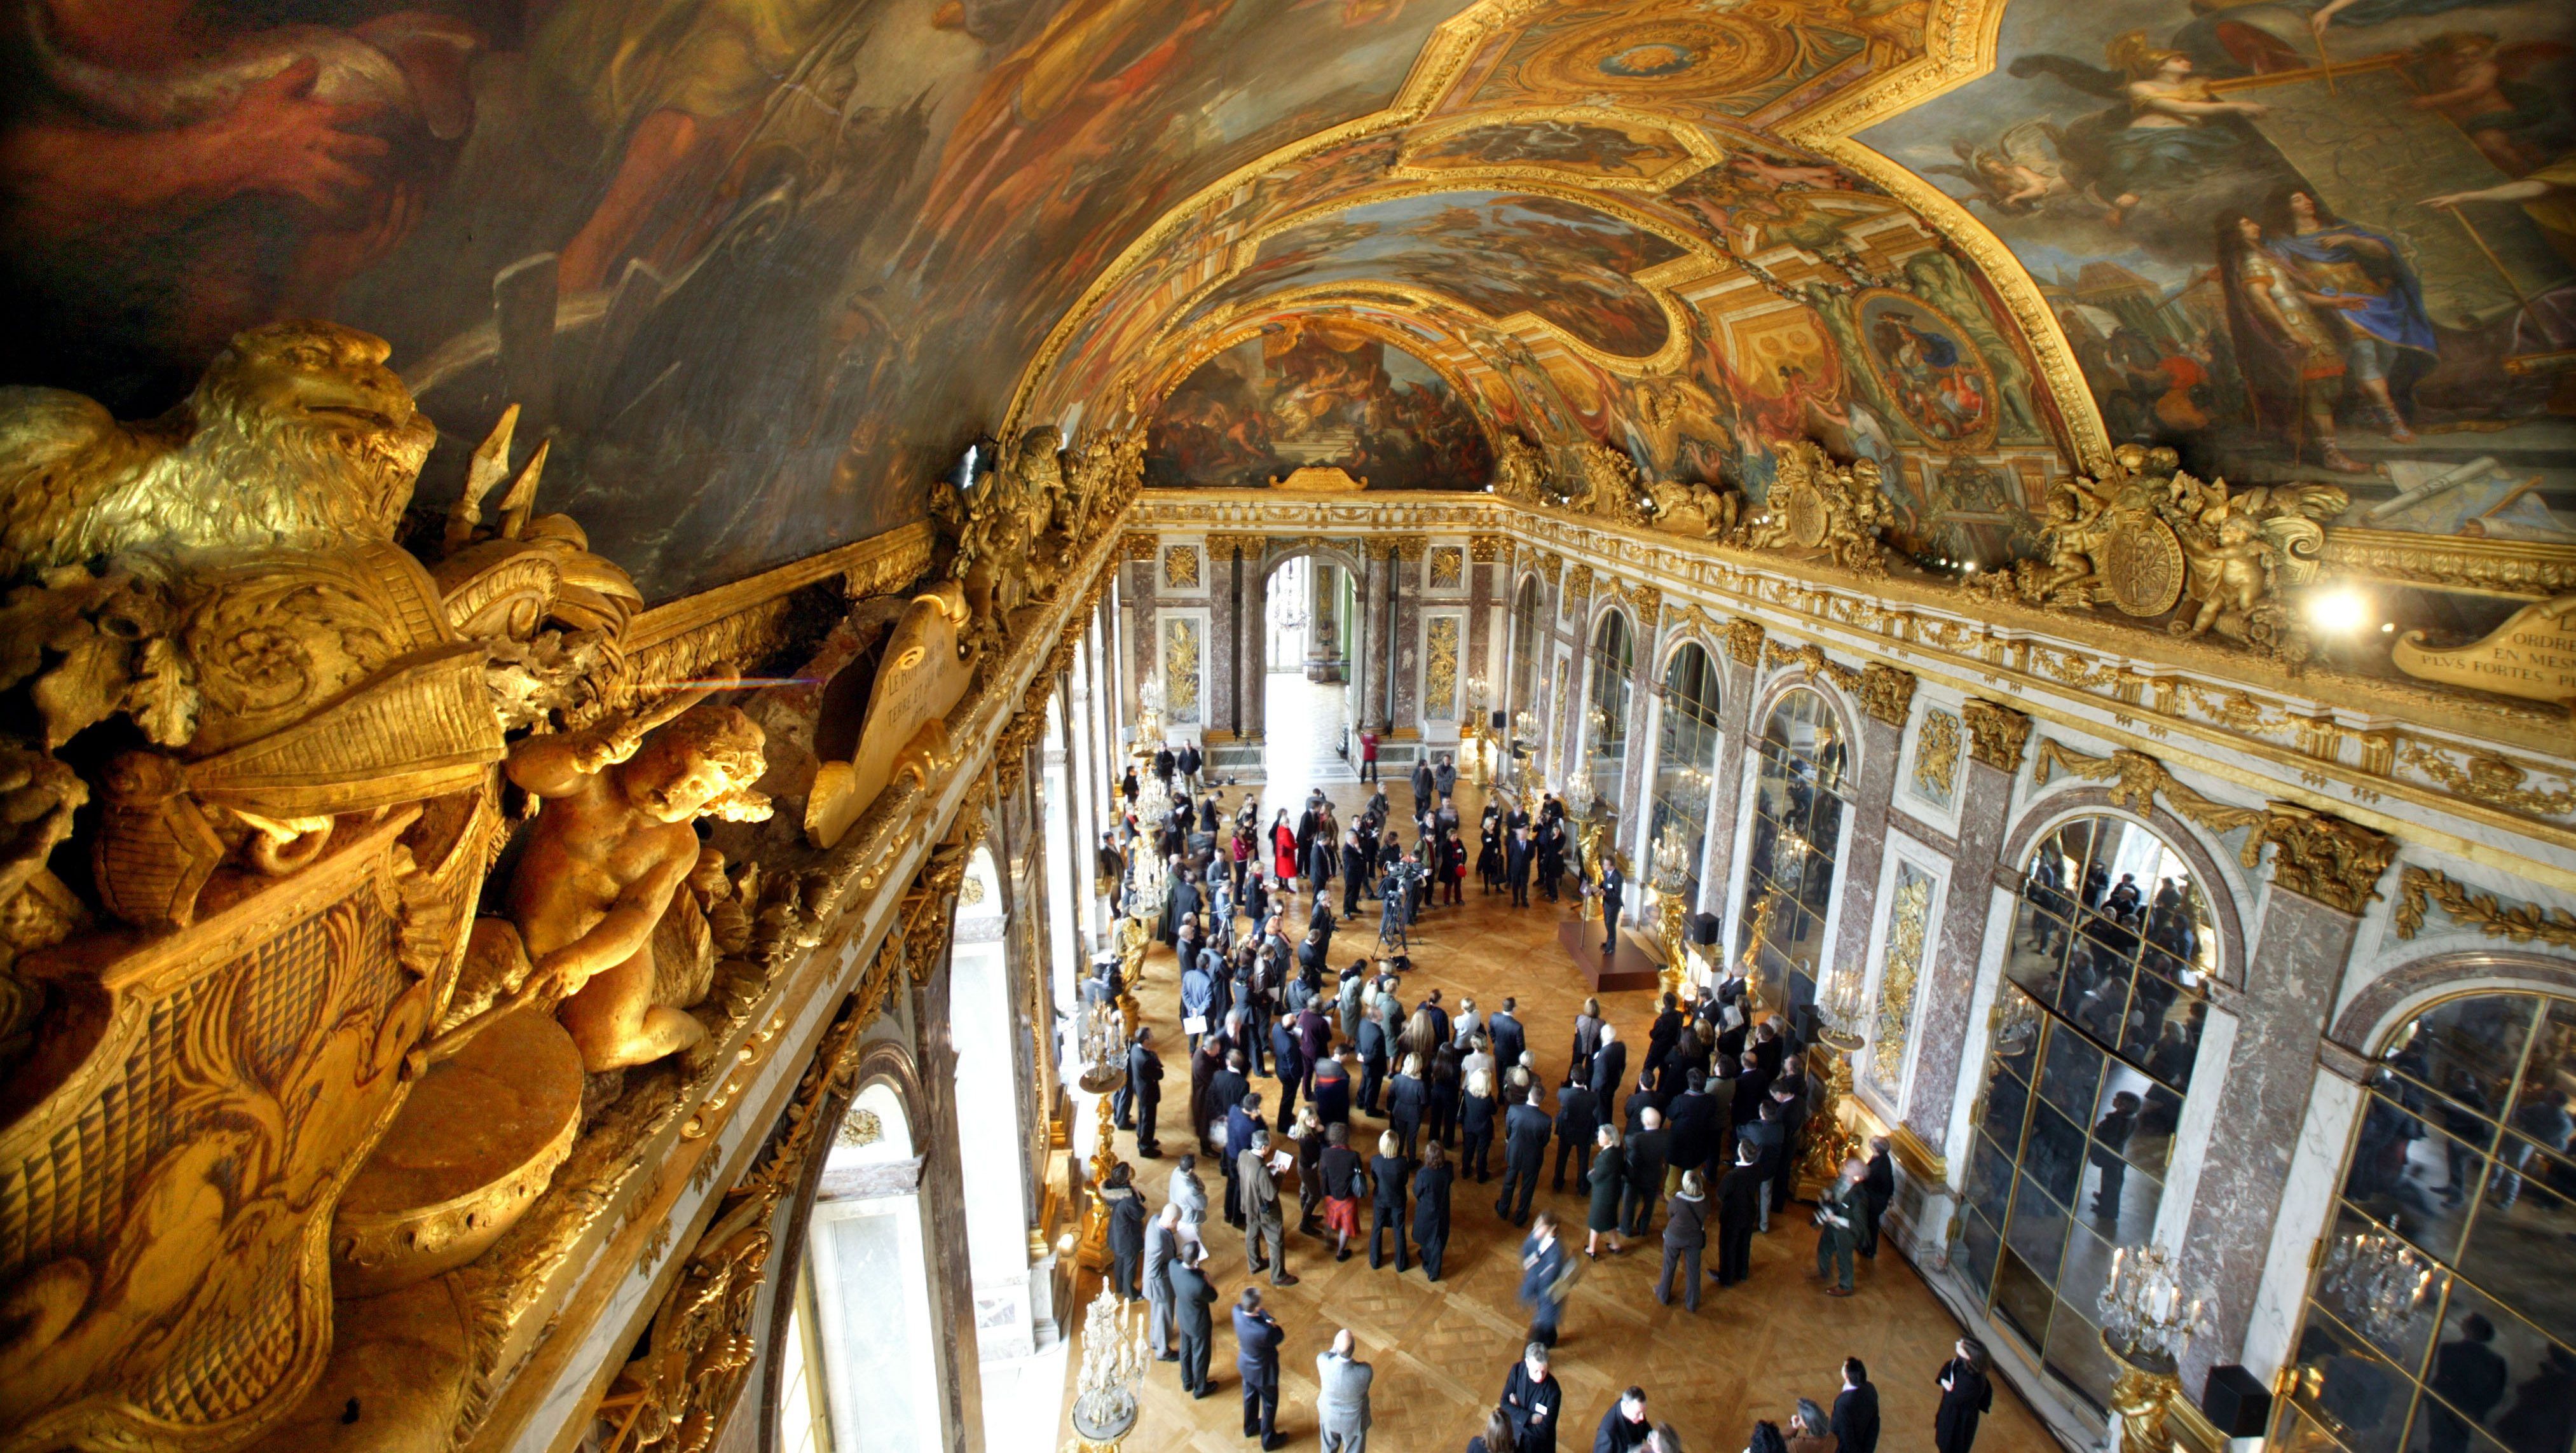 Guests visit the newly restored part of the Hall of Mirrors on its opening day at the Versailles Palace near Paris December 19, 2005. The first part of the Hall of Mirrors restoration was completed after 20 months of works, the restoration of the second part will start in February 2006. REUTERS/Charles Platiau - RTR1BAHH